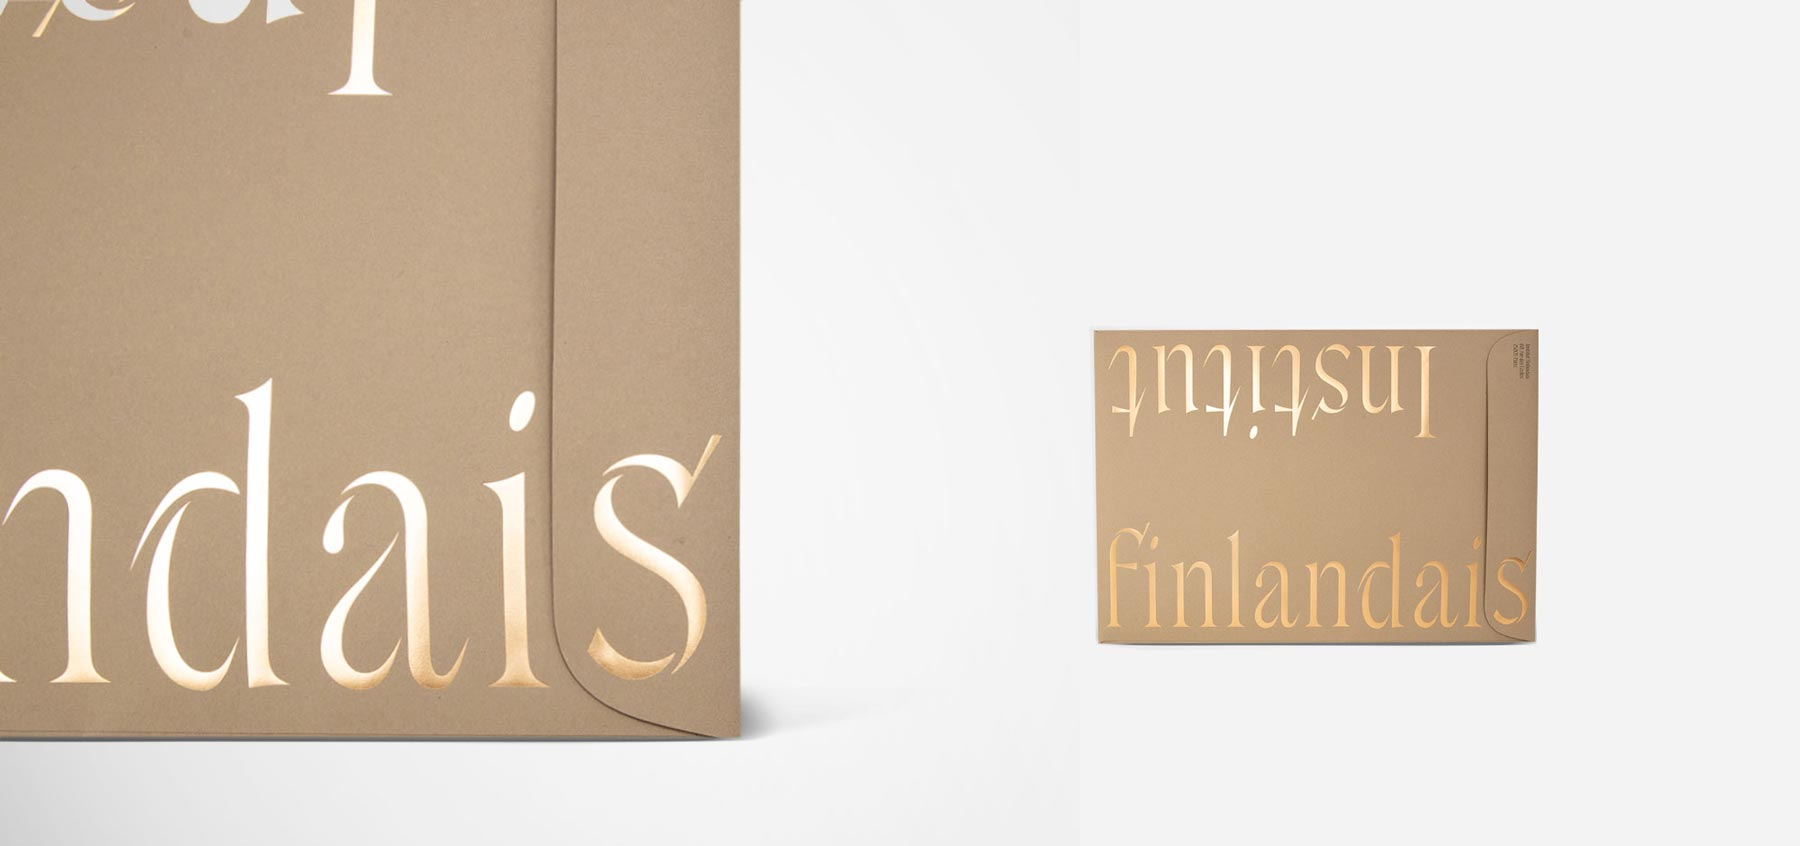 Institut Finlandais Red Dot Award Winning identity by Kuudes. Production by Framme